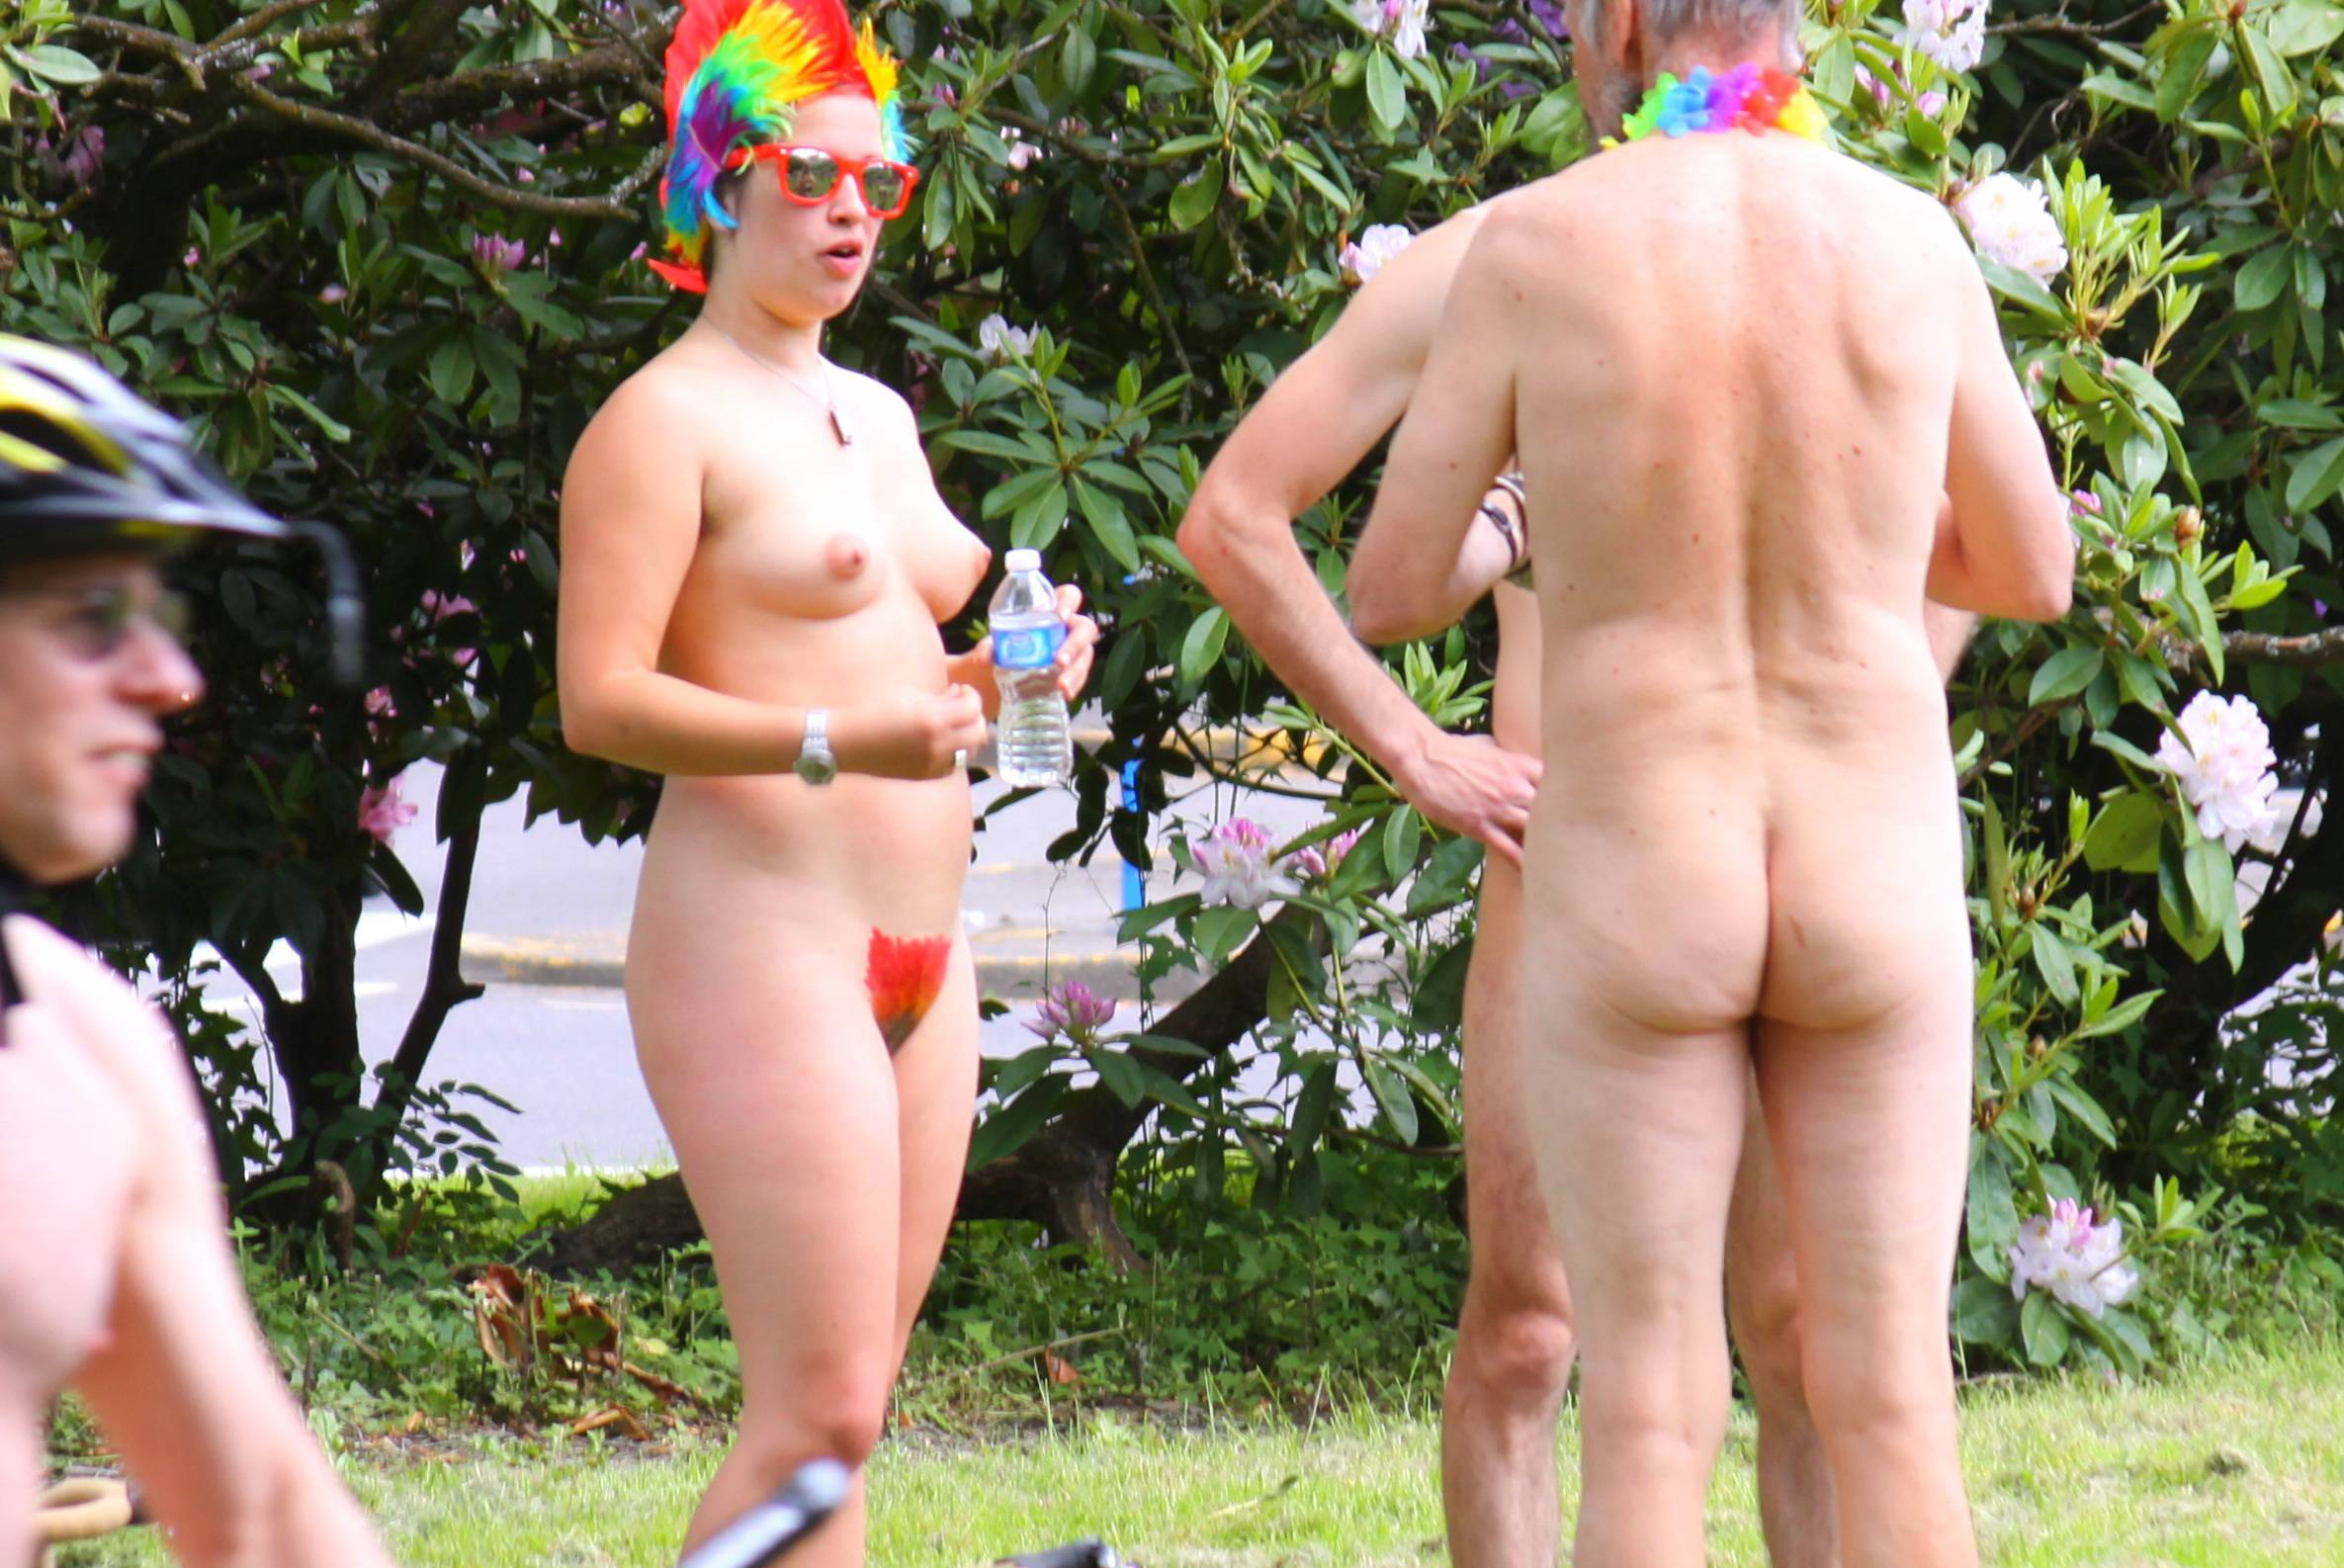 World Naked Bike Ride (WNBR) 2011 - 1